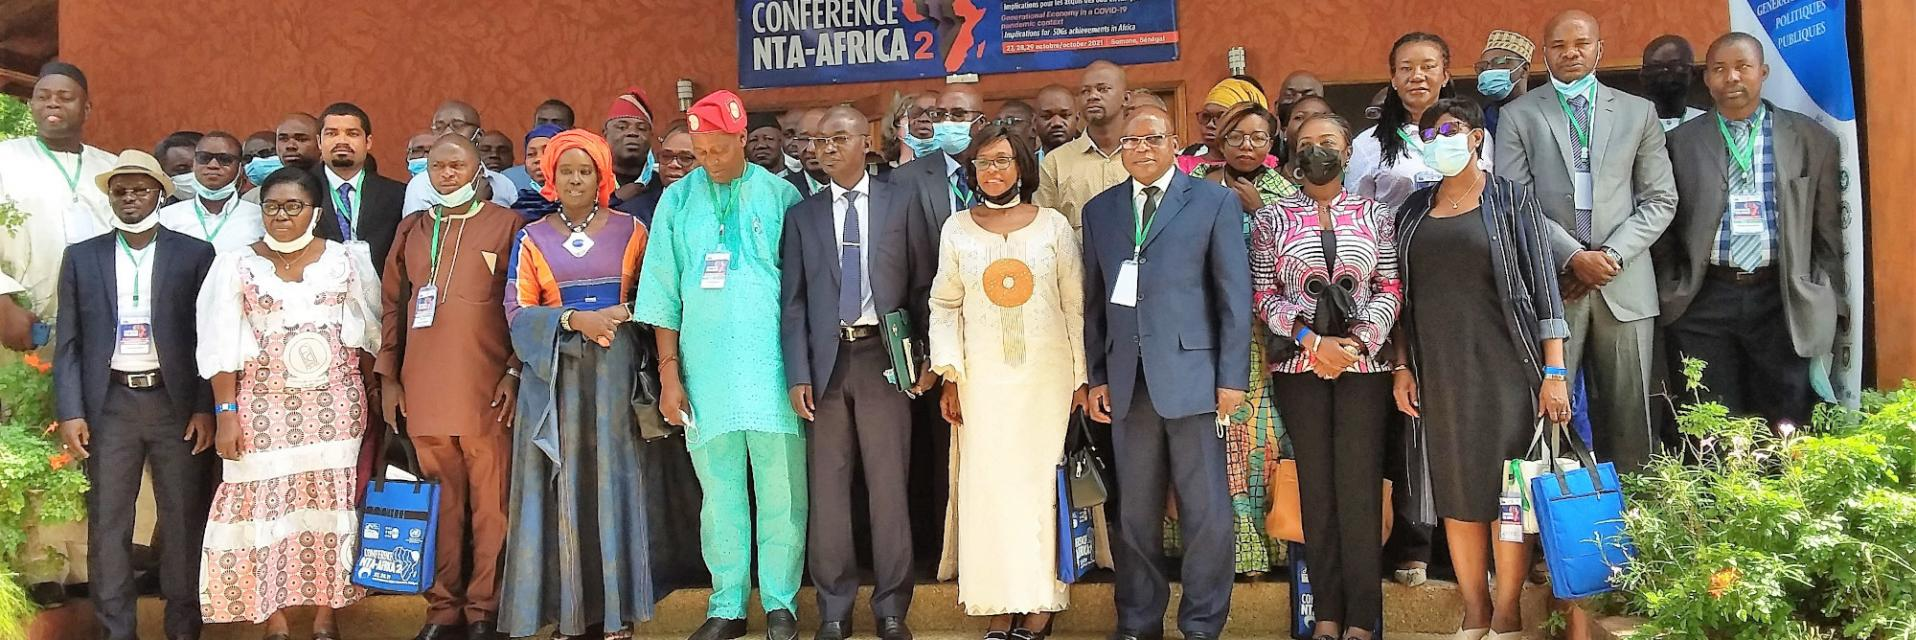 2nd Edition of the NTA Conference: Generational economy in the context of Covid-19 pandemic and the achievement of SDGs in Africa at the heart of the debates